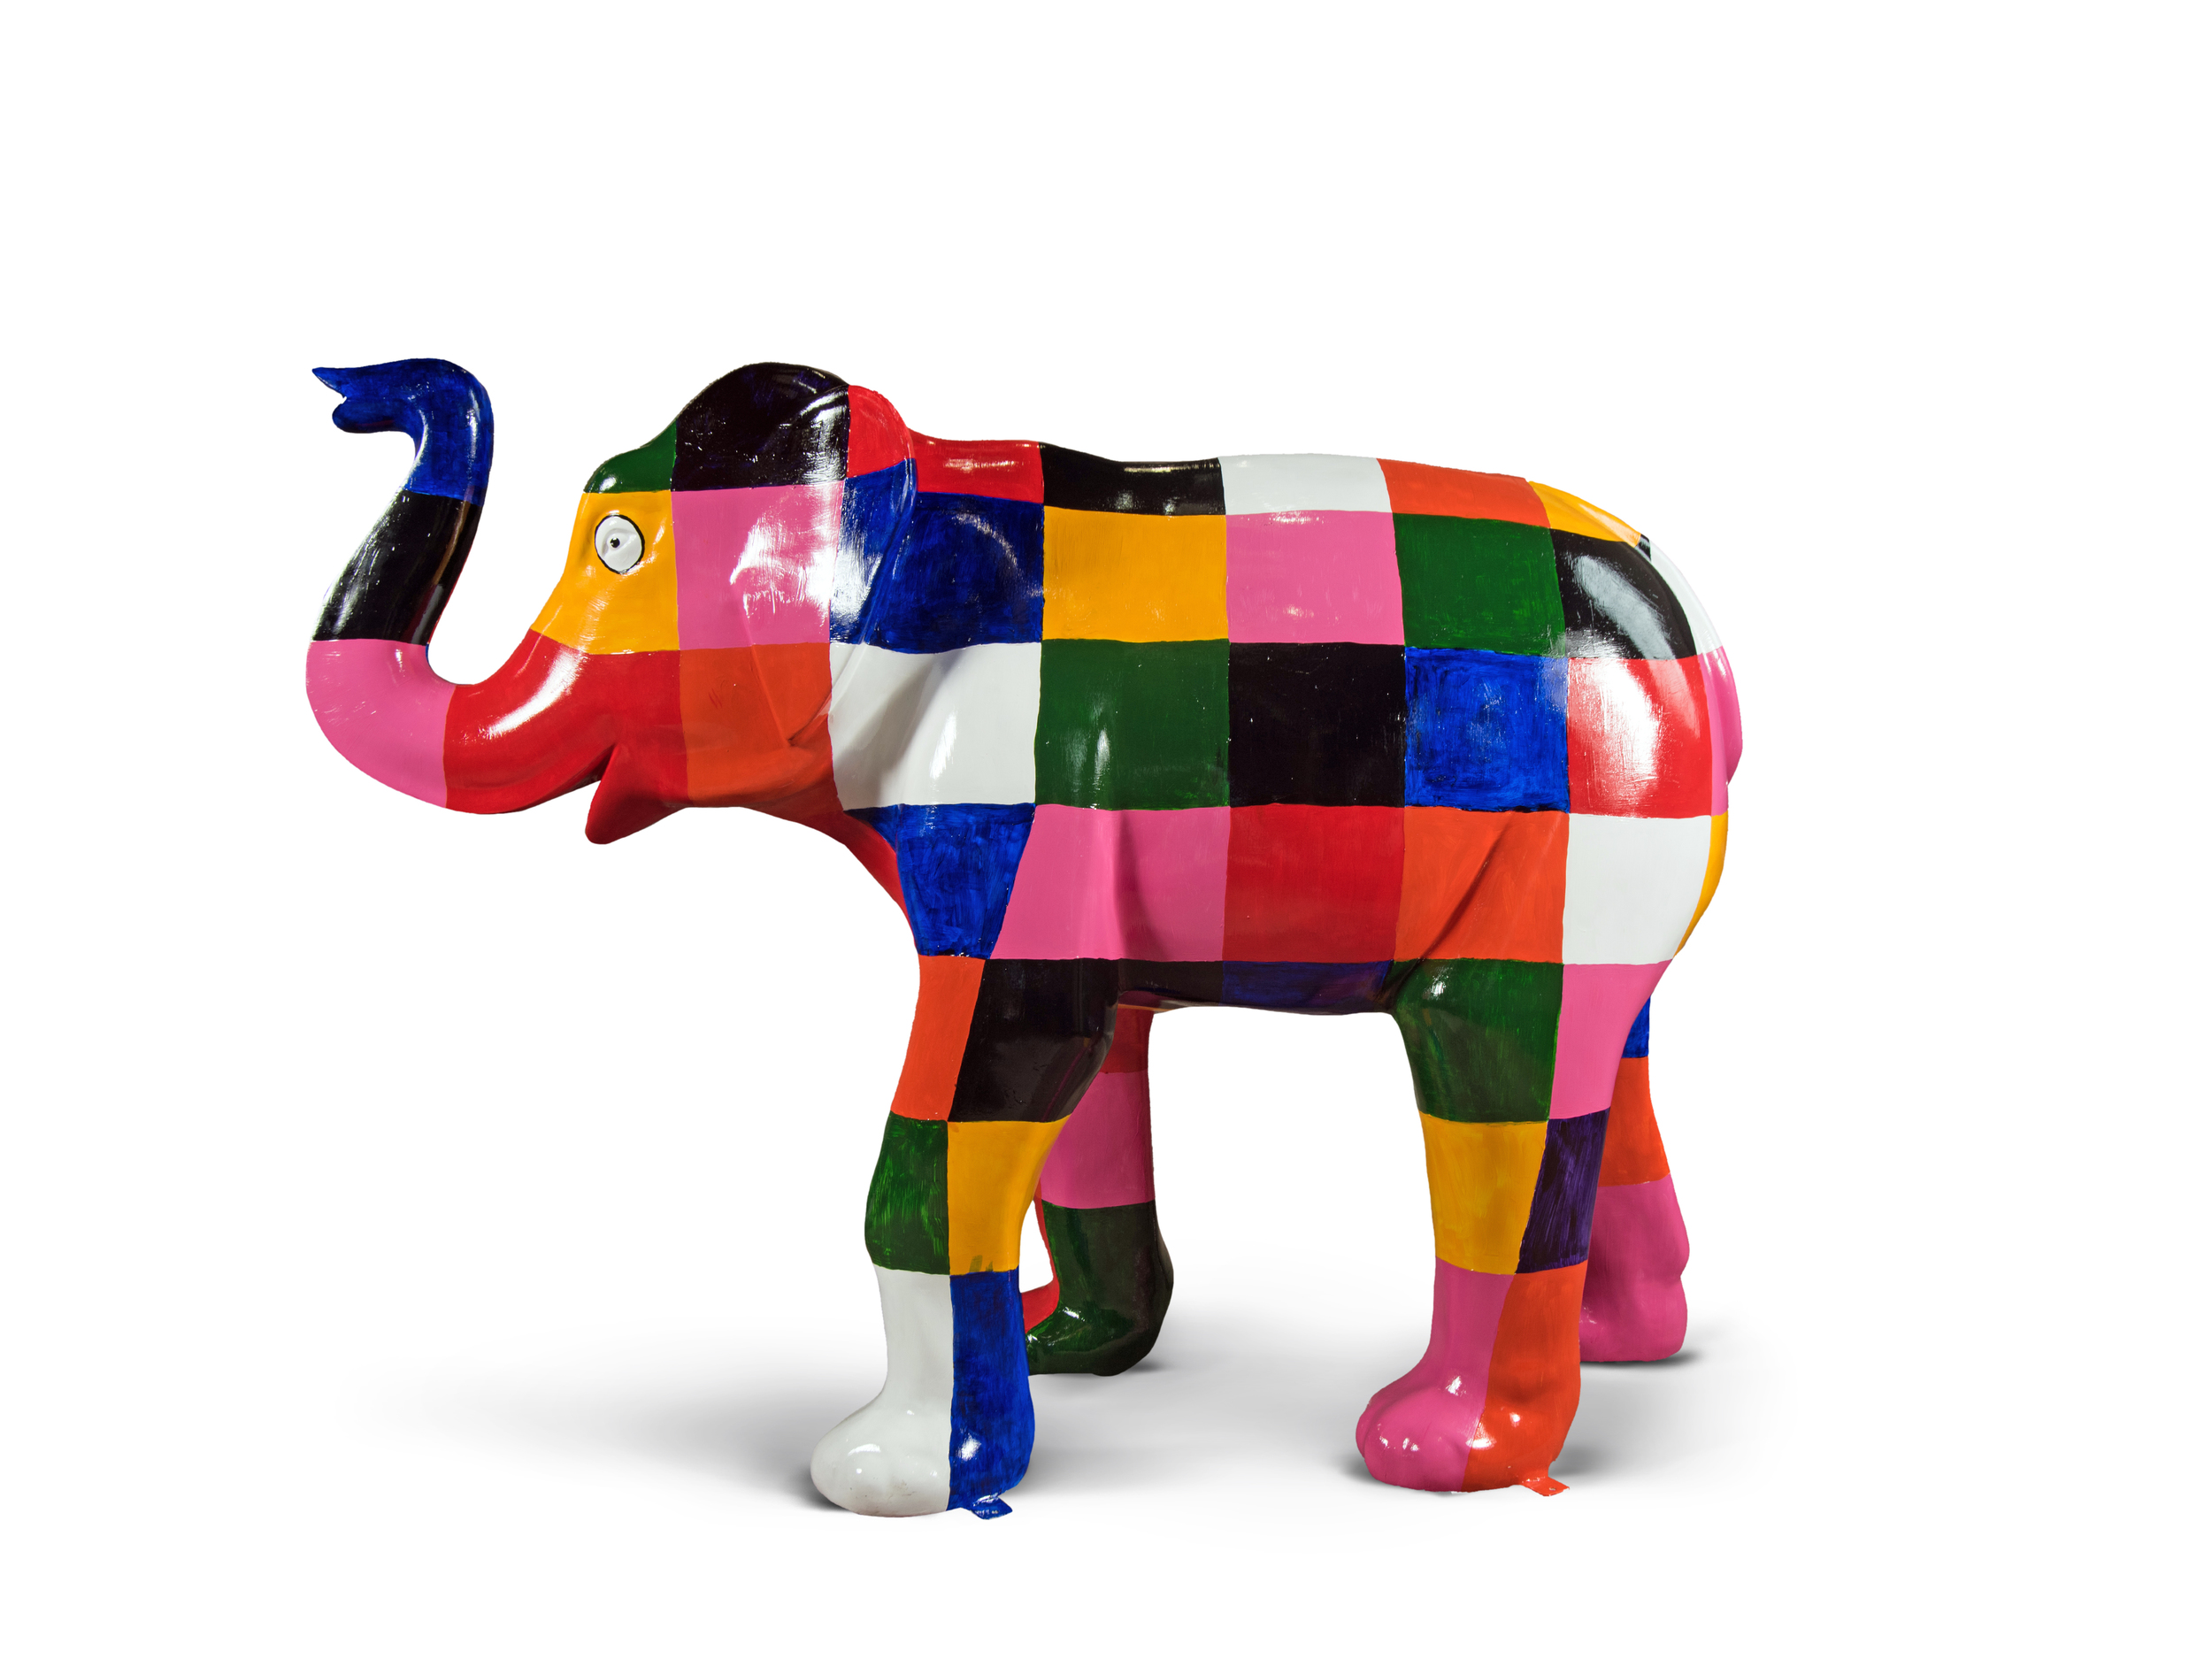 Elmer-the-Patchwork-Elephant-Patients-at-Sheffield-Childrens-Hospital-2.jpg